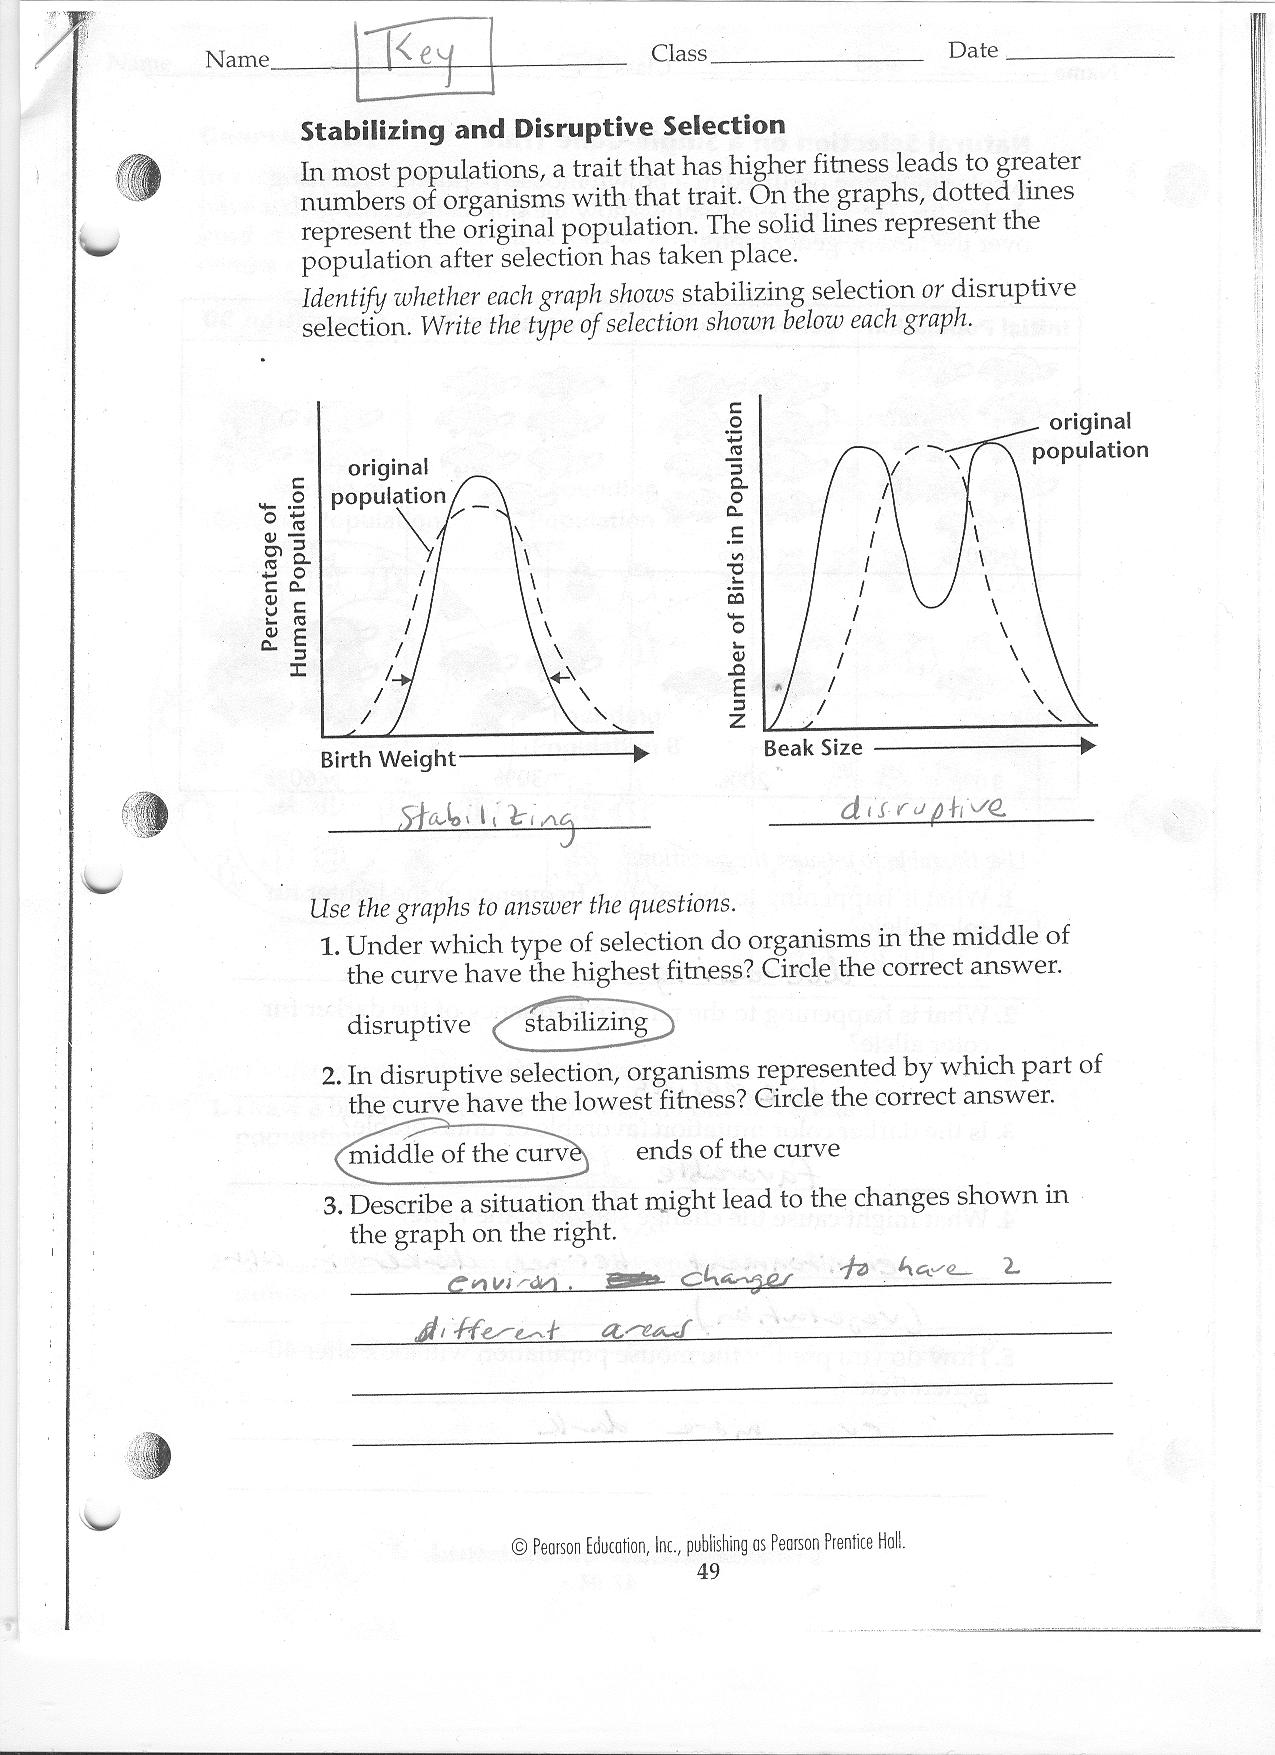 Free Worksheet Evolution Worksheet biochemical evidence for evolution worksheet straubel biology 2010 2011